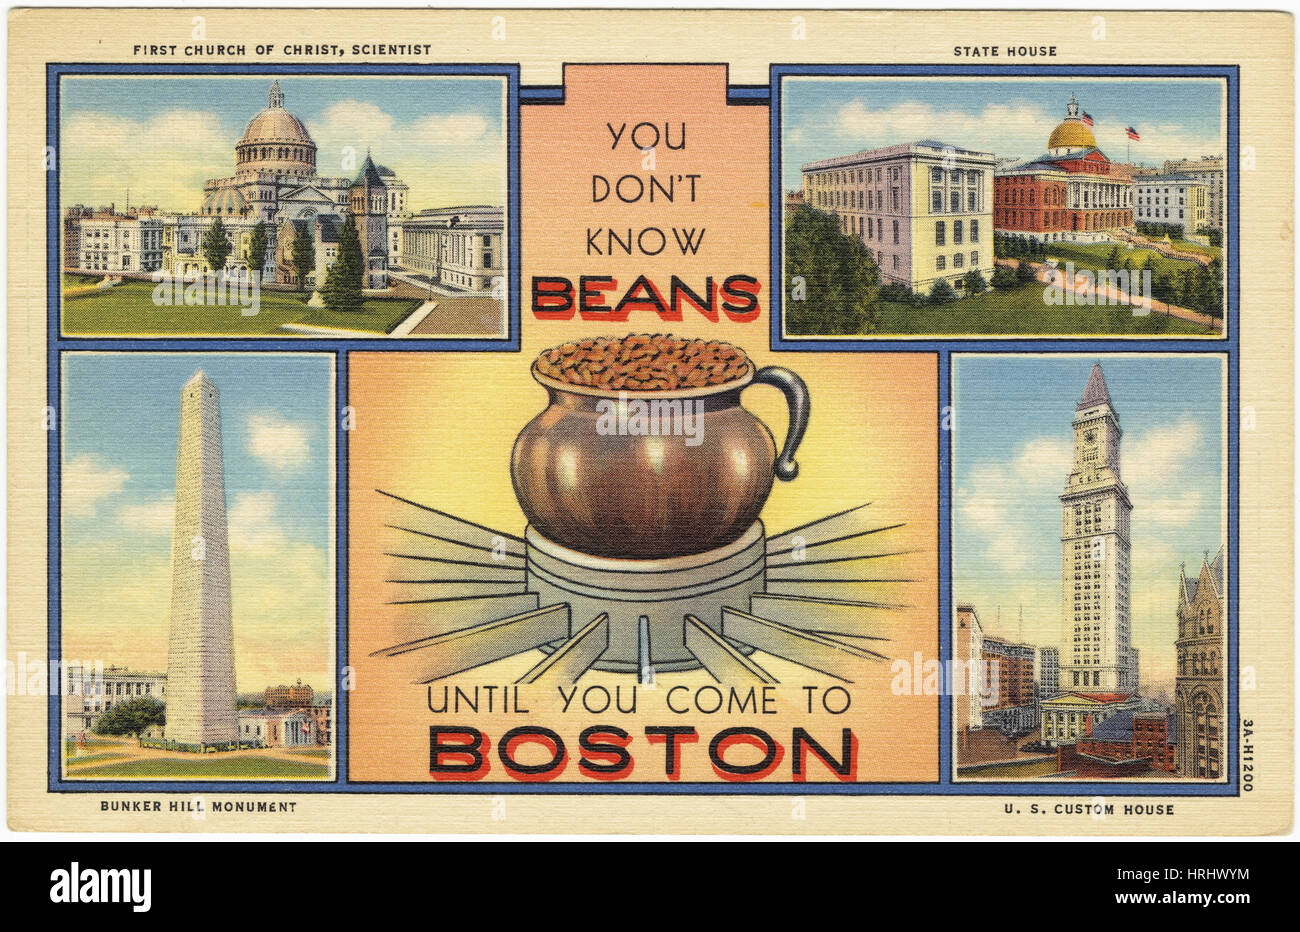 Boston -  10 07 You Don't Know Beans Until You Come to Boston [front] - Stock Image